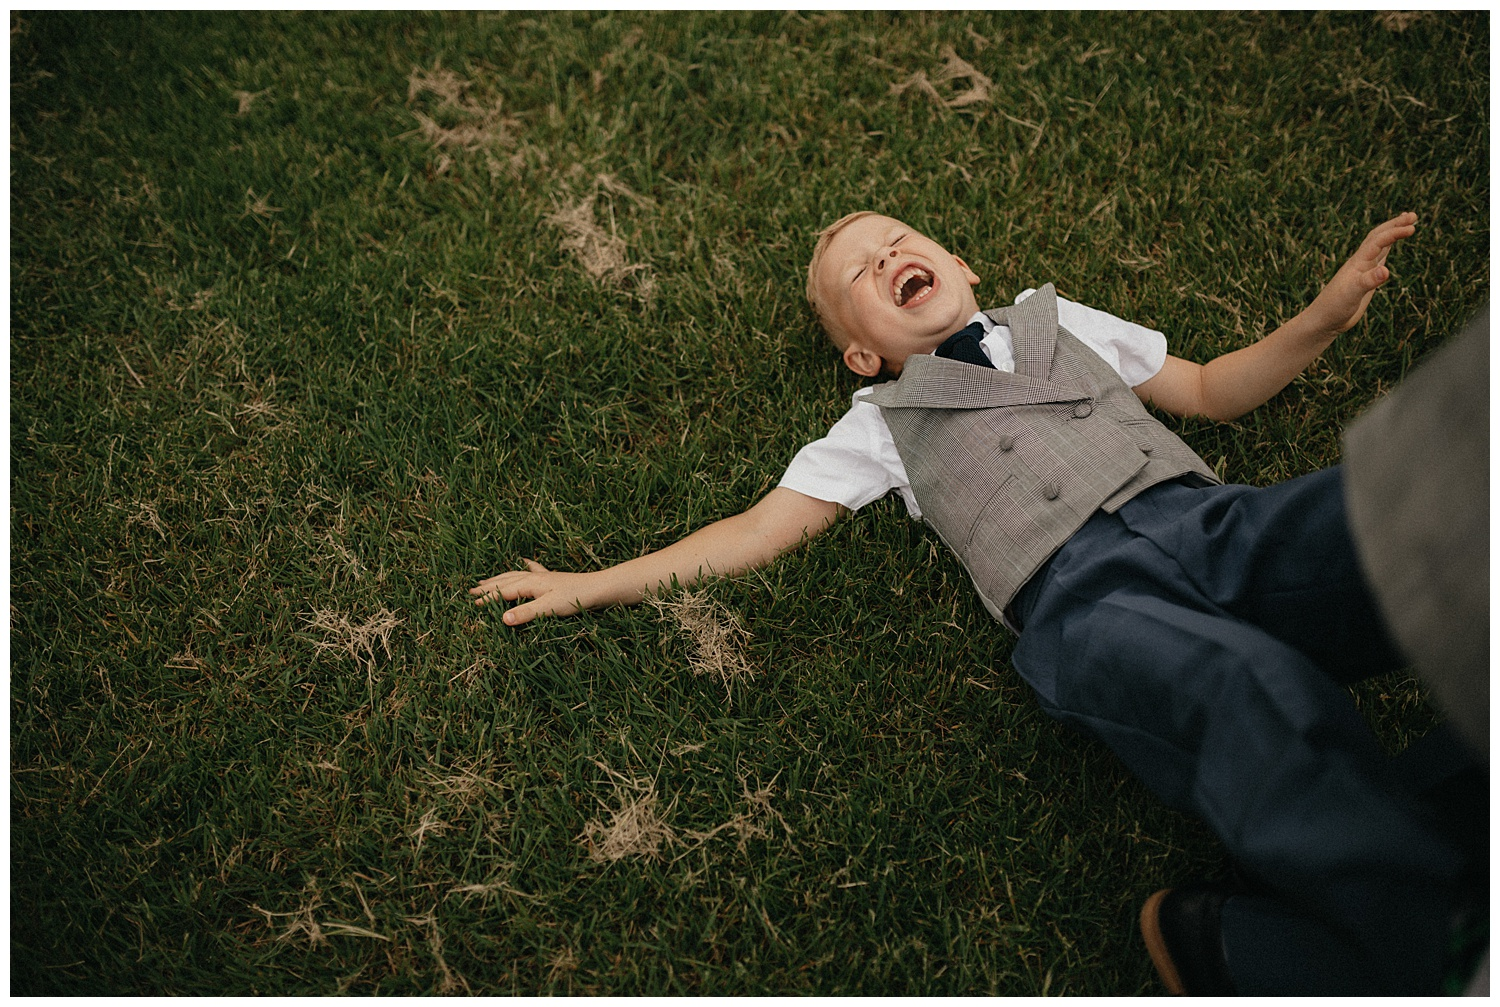 Weddings-at-Crondon-Park-boy-laughs-on-the-grass